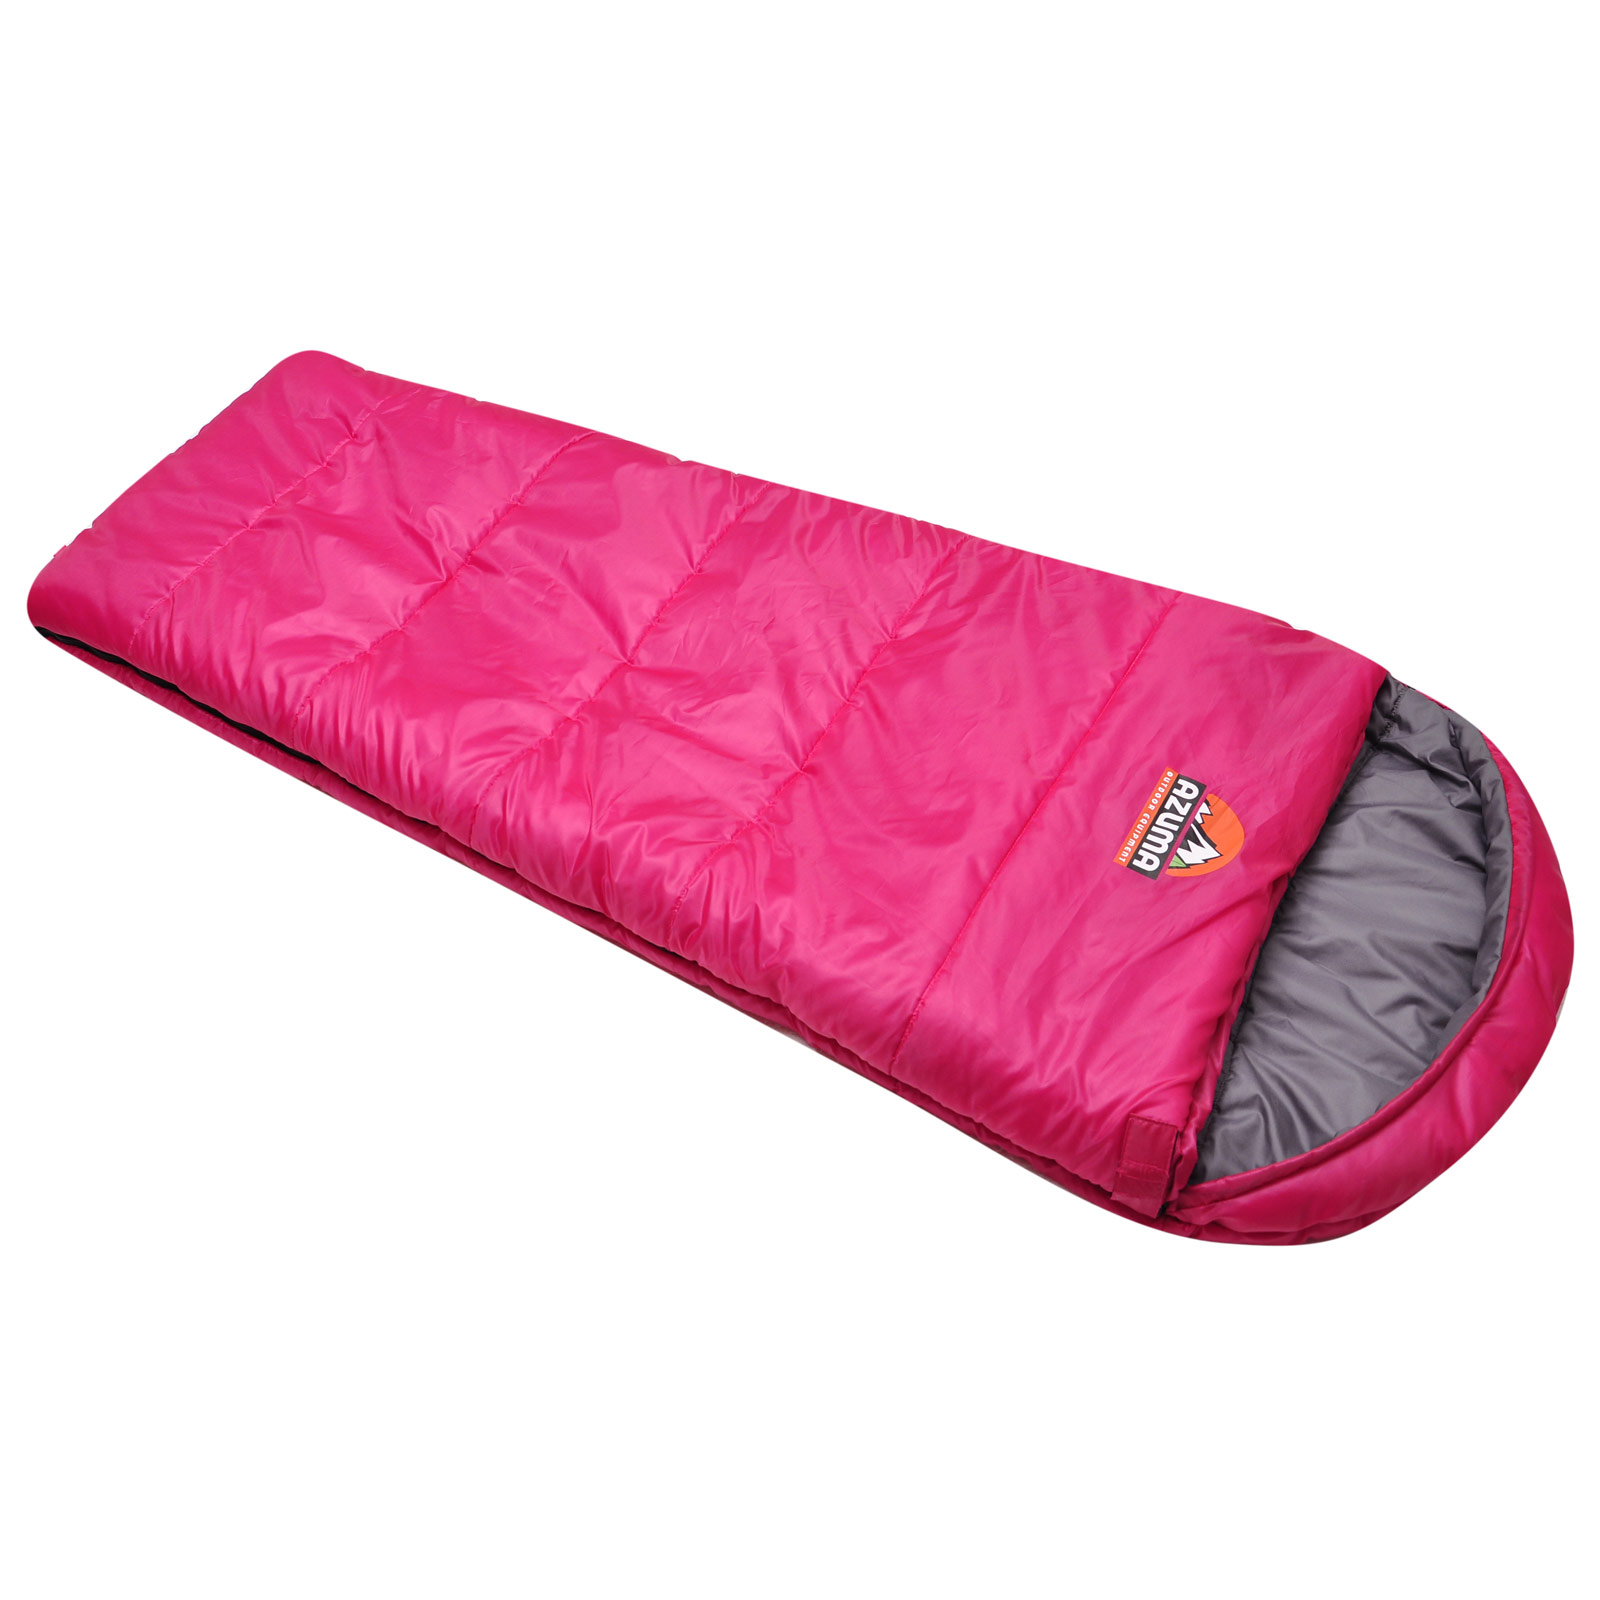 Azuma Pink / Grey Childrens Kids Junior Mummy Sleeping Bag ...